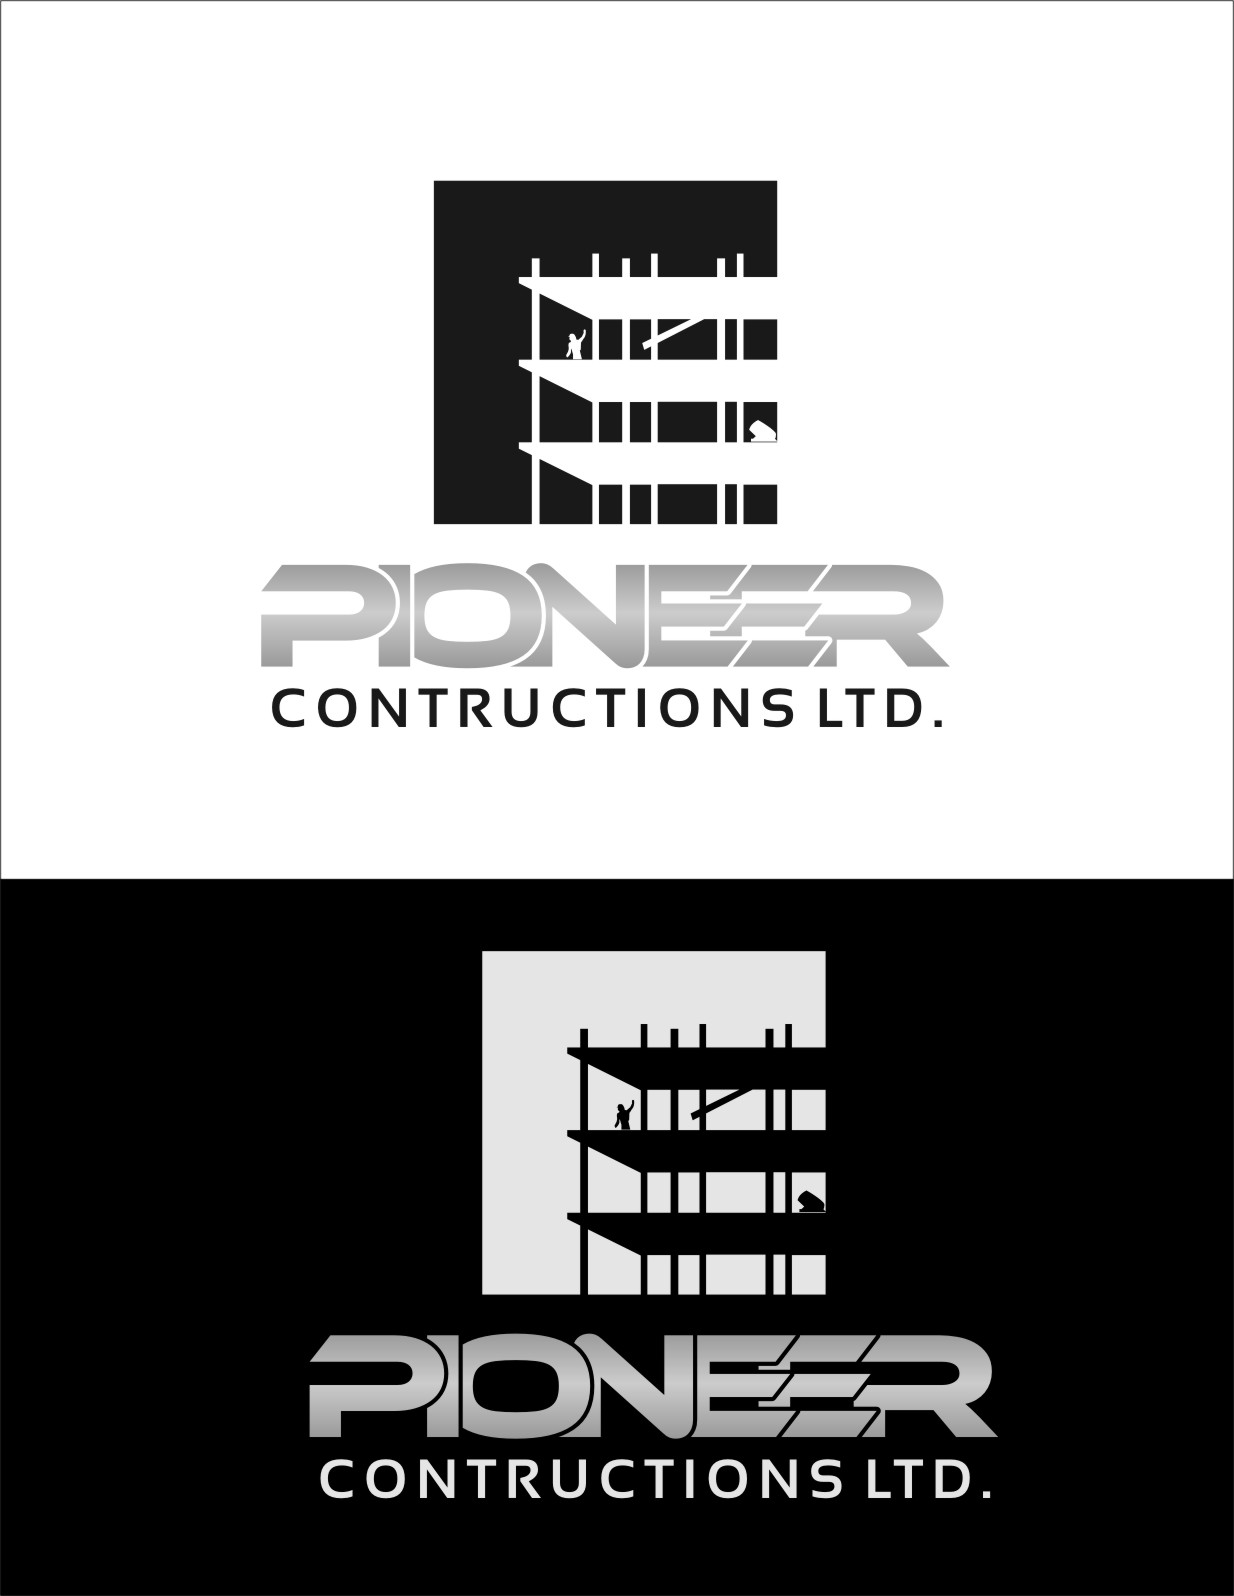 Logo Design by Ngepet_art - Entry No. 94 in the Logo Design Contest Imaginative Logo Design for  Pioneer Construction Ltd.